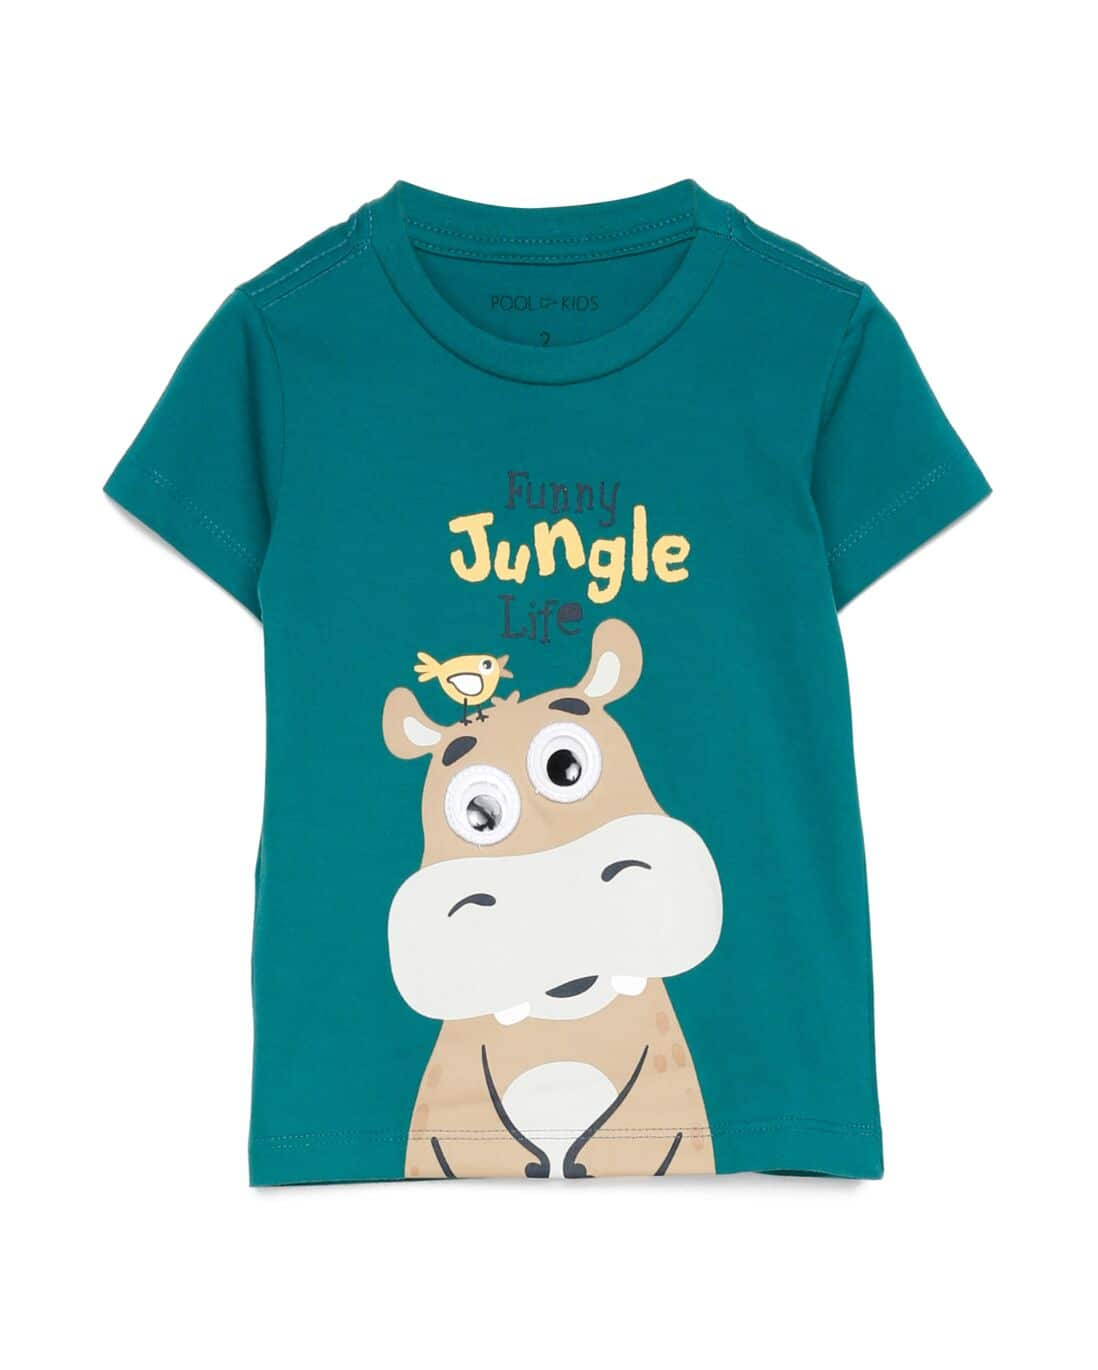 Camiseta Manga Curta Funny Jungle Life - Verde